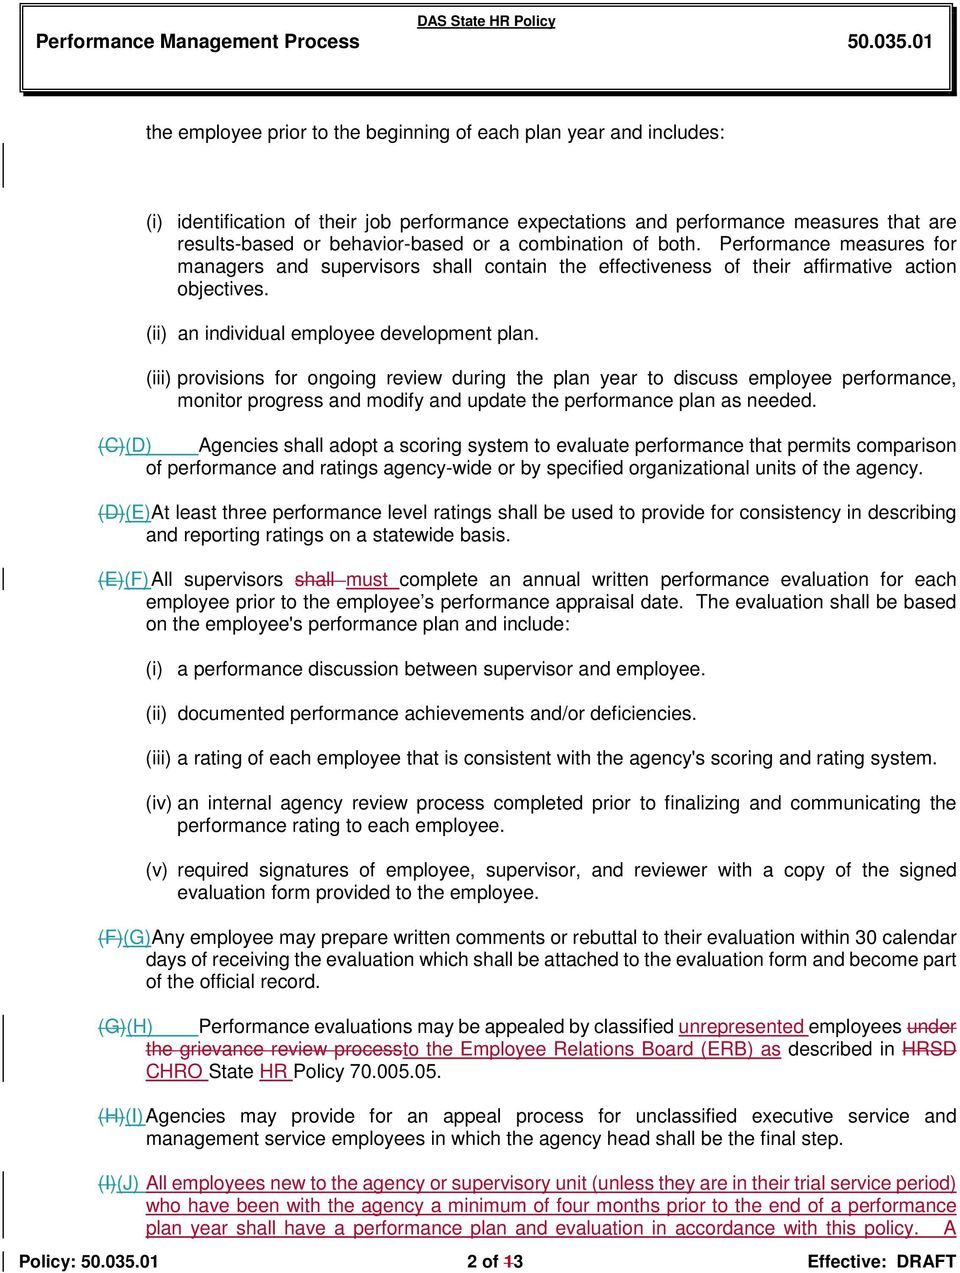 subject performance management process number division chief performance measures for managers and supervisors shall contain the effectiveness of their